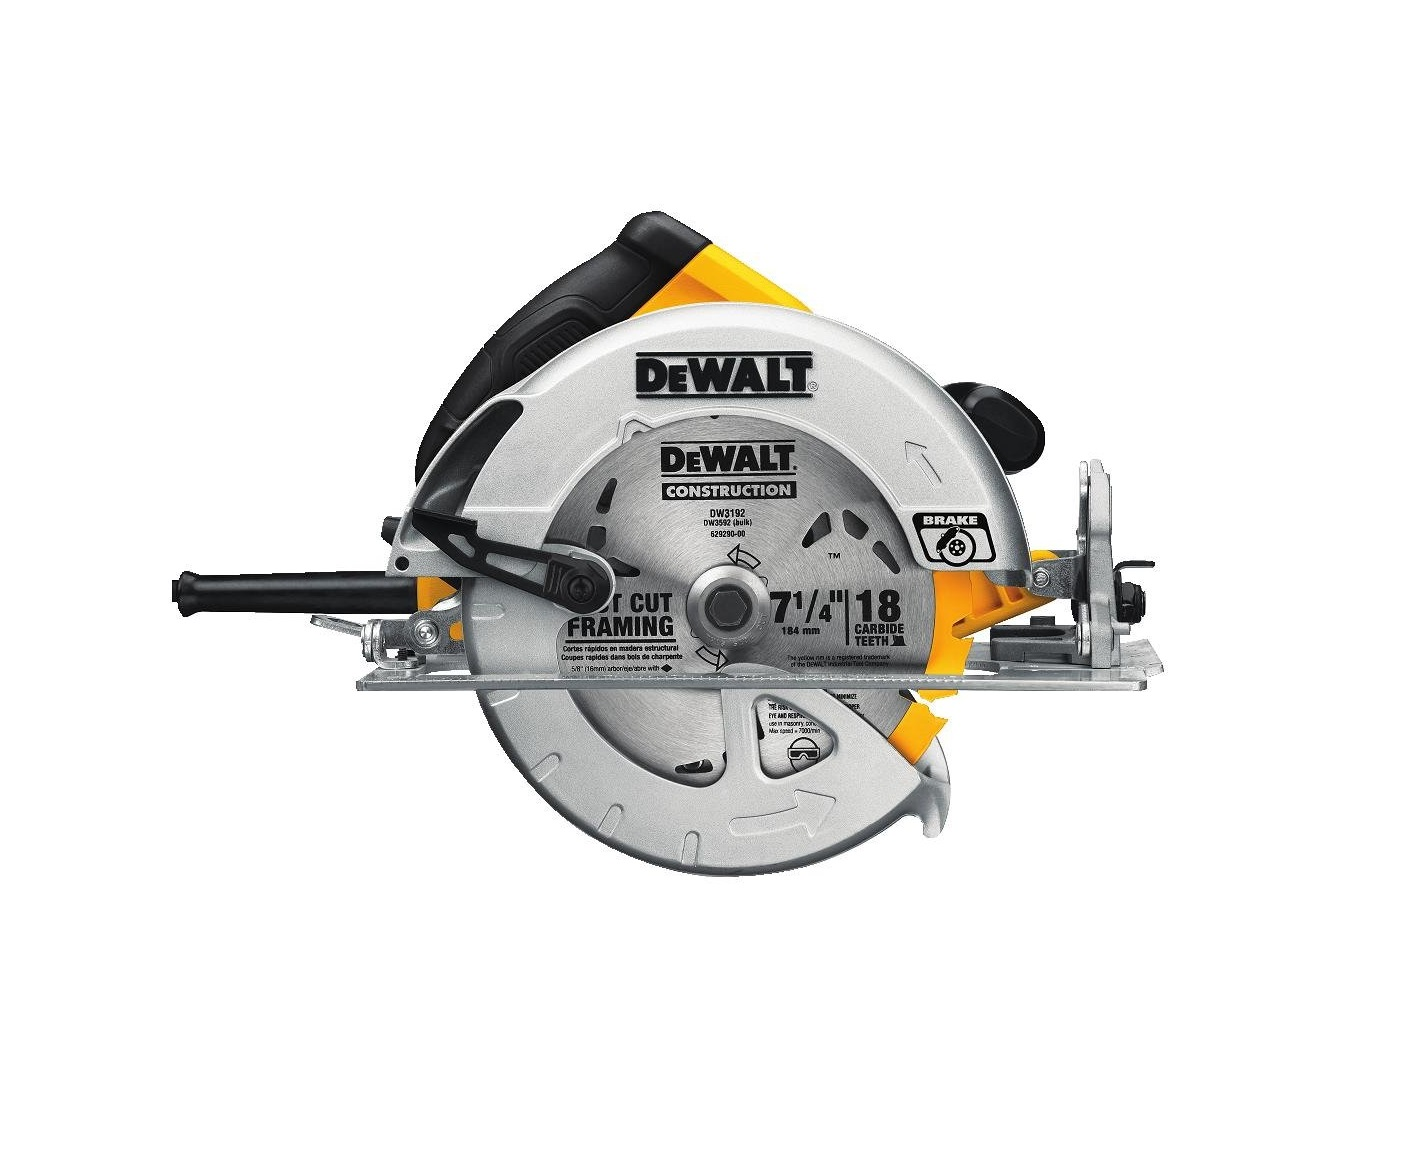 TOP 5 BEST COMPACT CIRCULAR SAWS IN 2020 REVIEWS